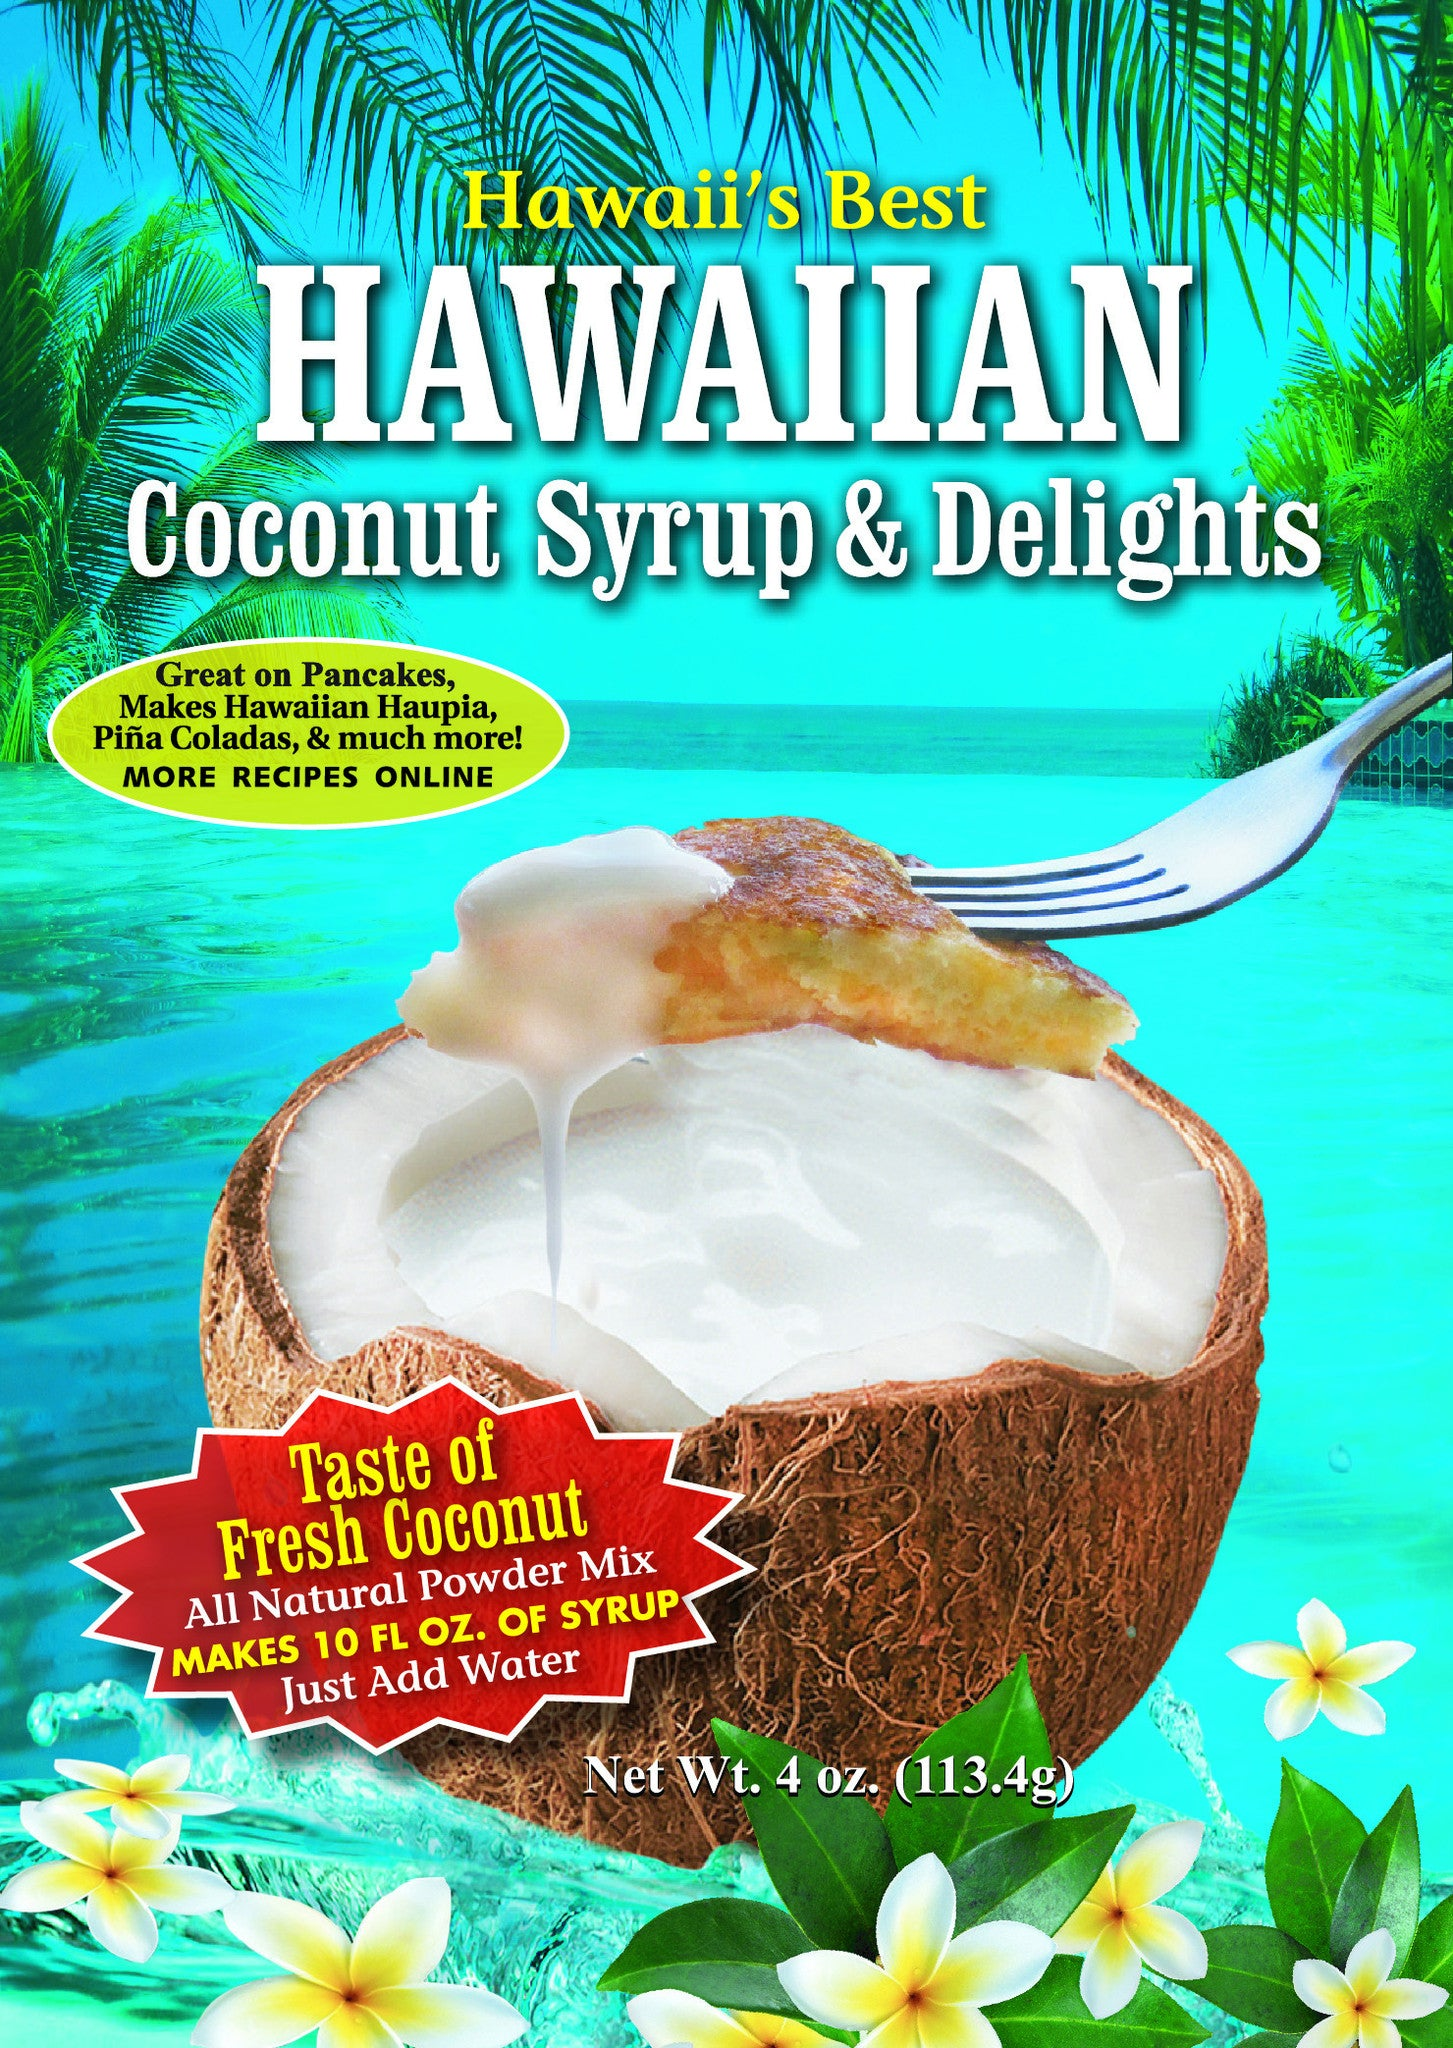 (10 BAGS - EXTRA VALUE PACK, $3.24 EACH!) HAWAIIAN COCONUT CREAM SYRUP MIX (4 oz package).